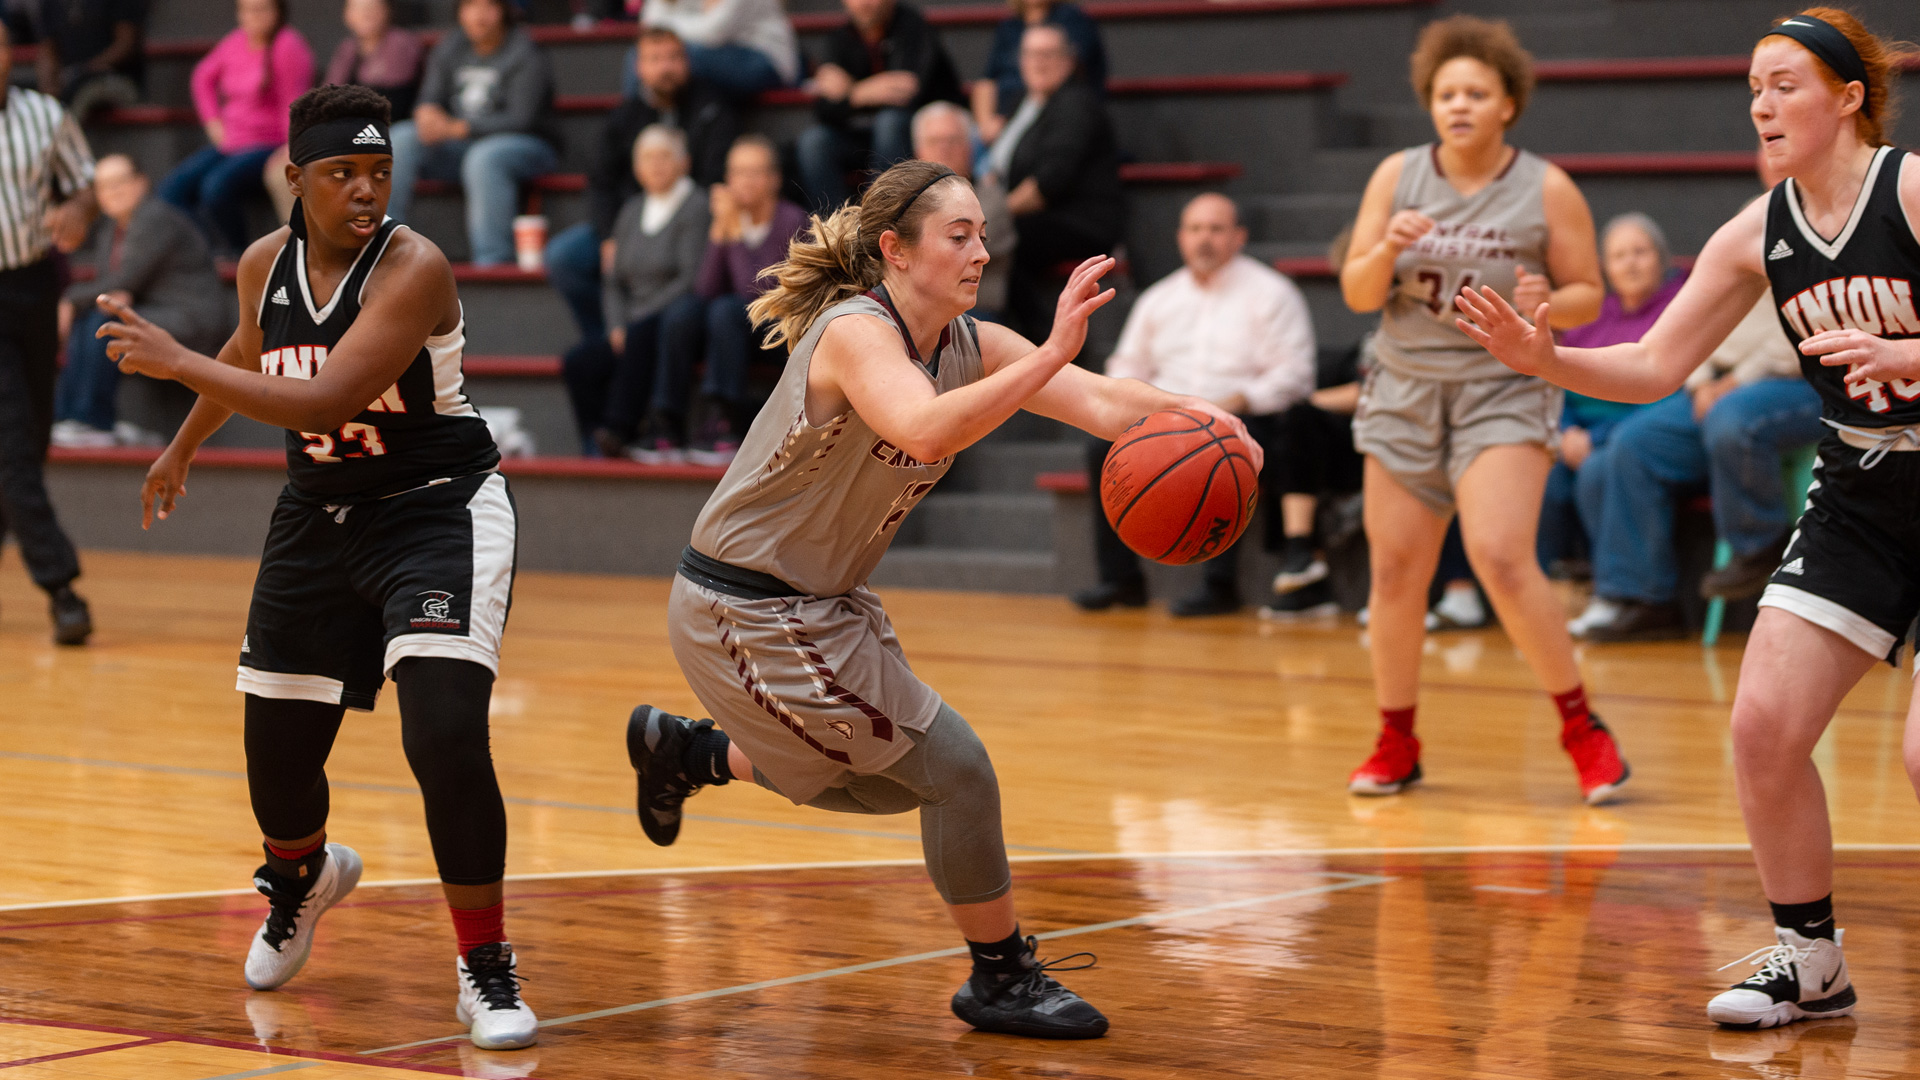 CCCB junior Autumn Gunter drives to the basket against Union College on Thursday, Nov. 7, 2019.